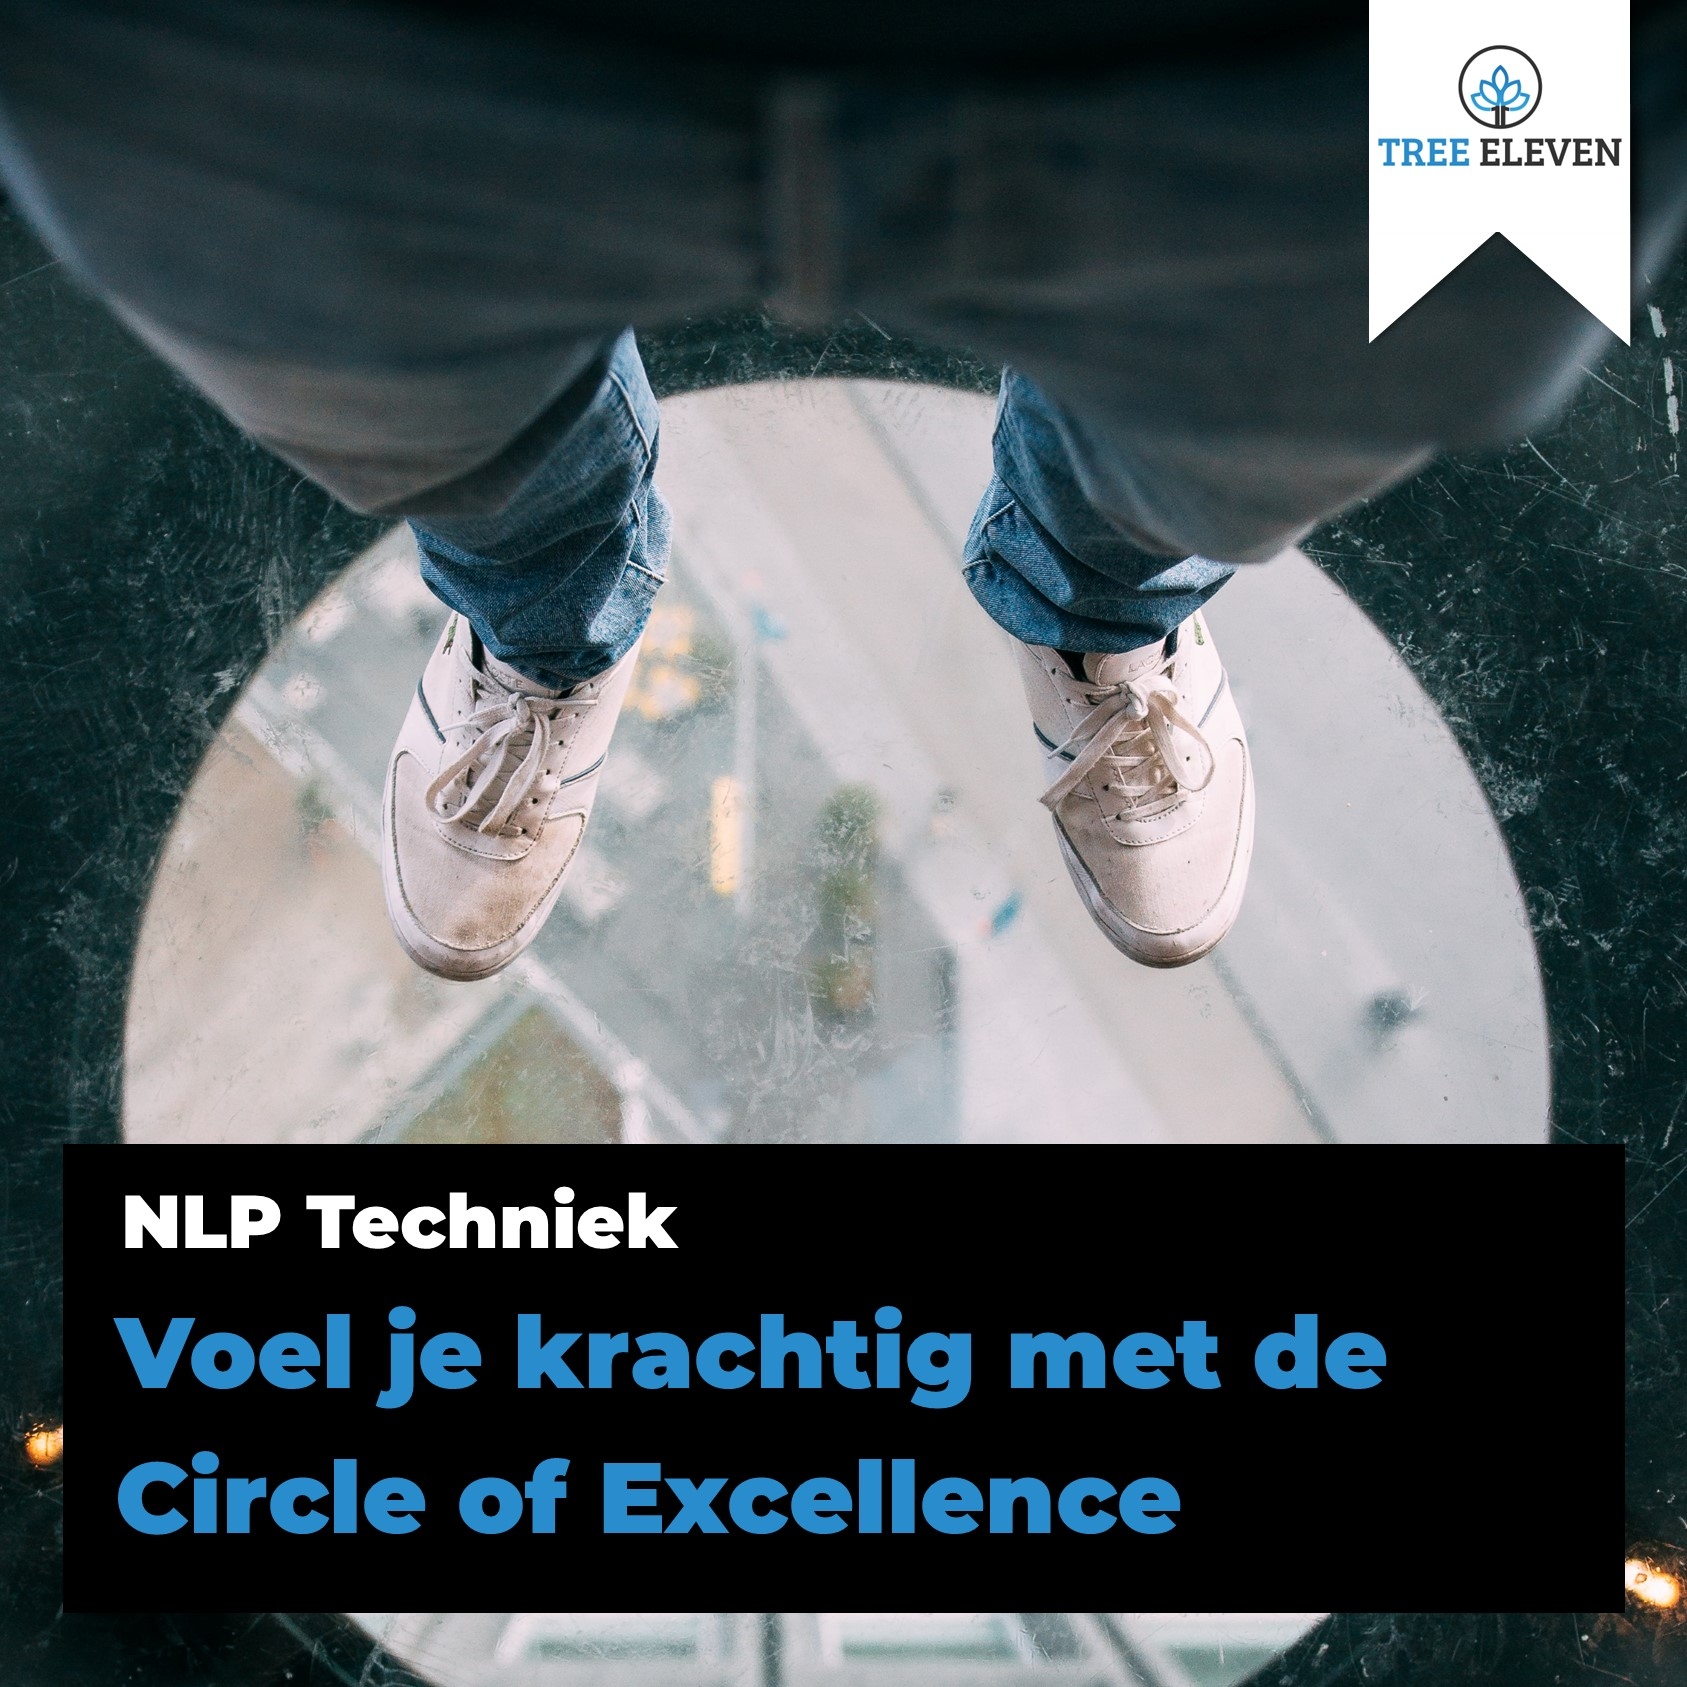 Circle of Excellence NLP Techniek